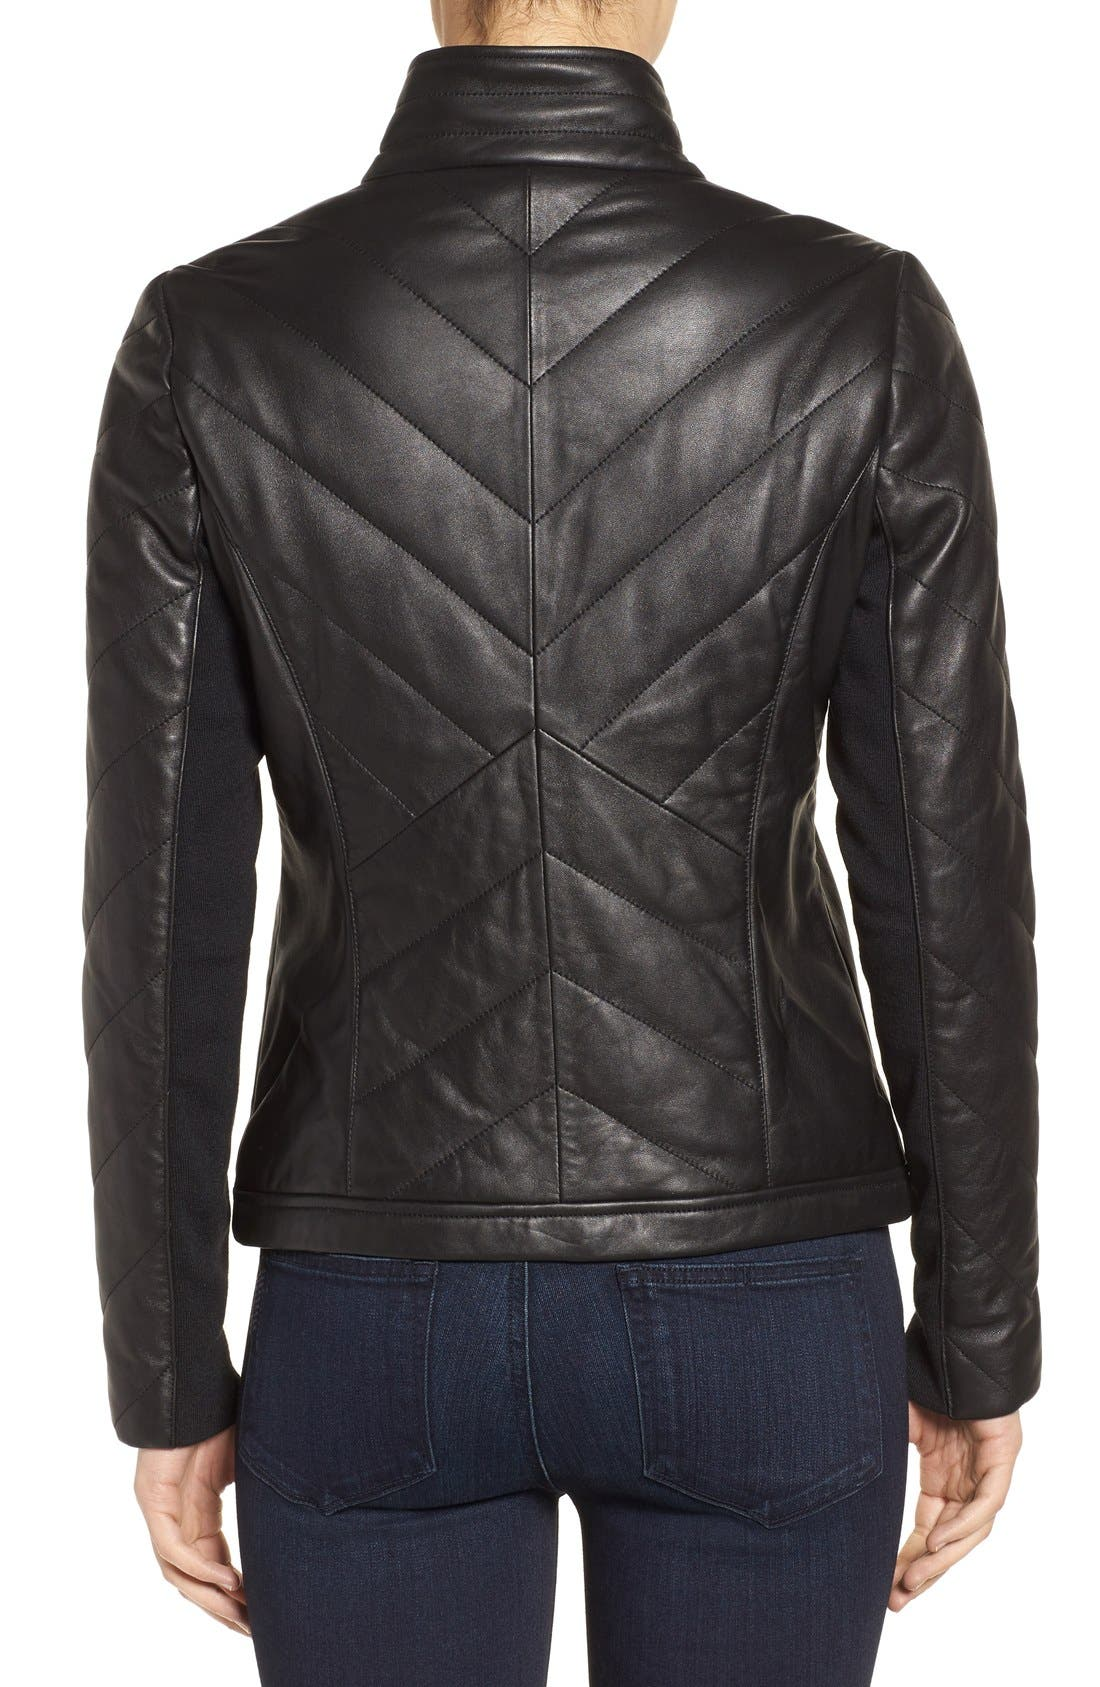 Badgley Mischka Eloise Quilted Leather Moto Jacket,                             Alternate thumbnail 4, color,                             001